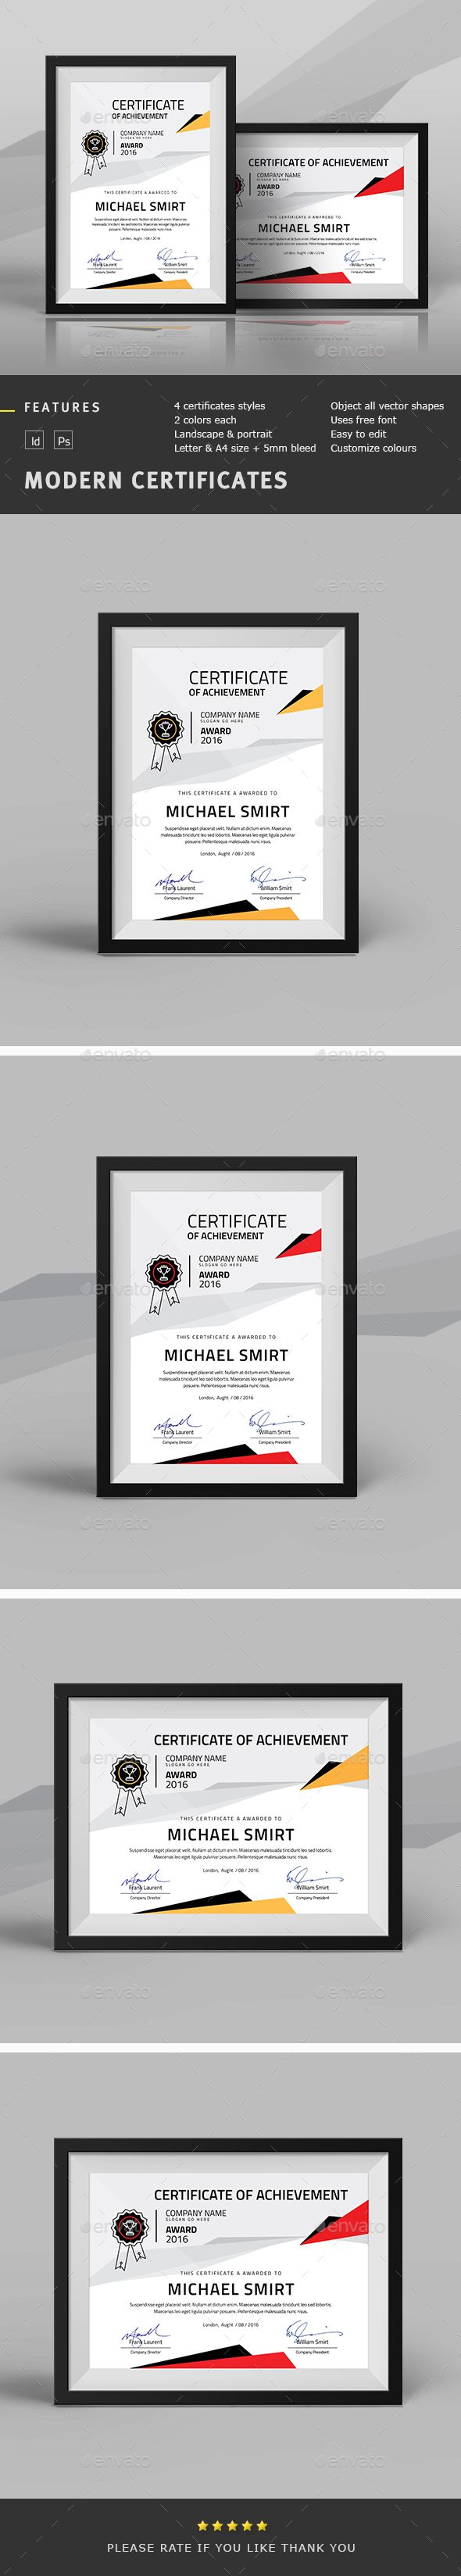 169 best certificate images on pinterest certificate templates